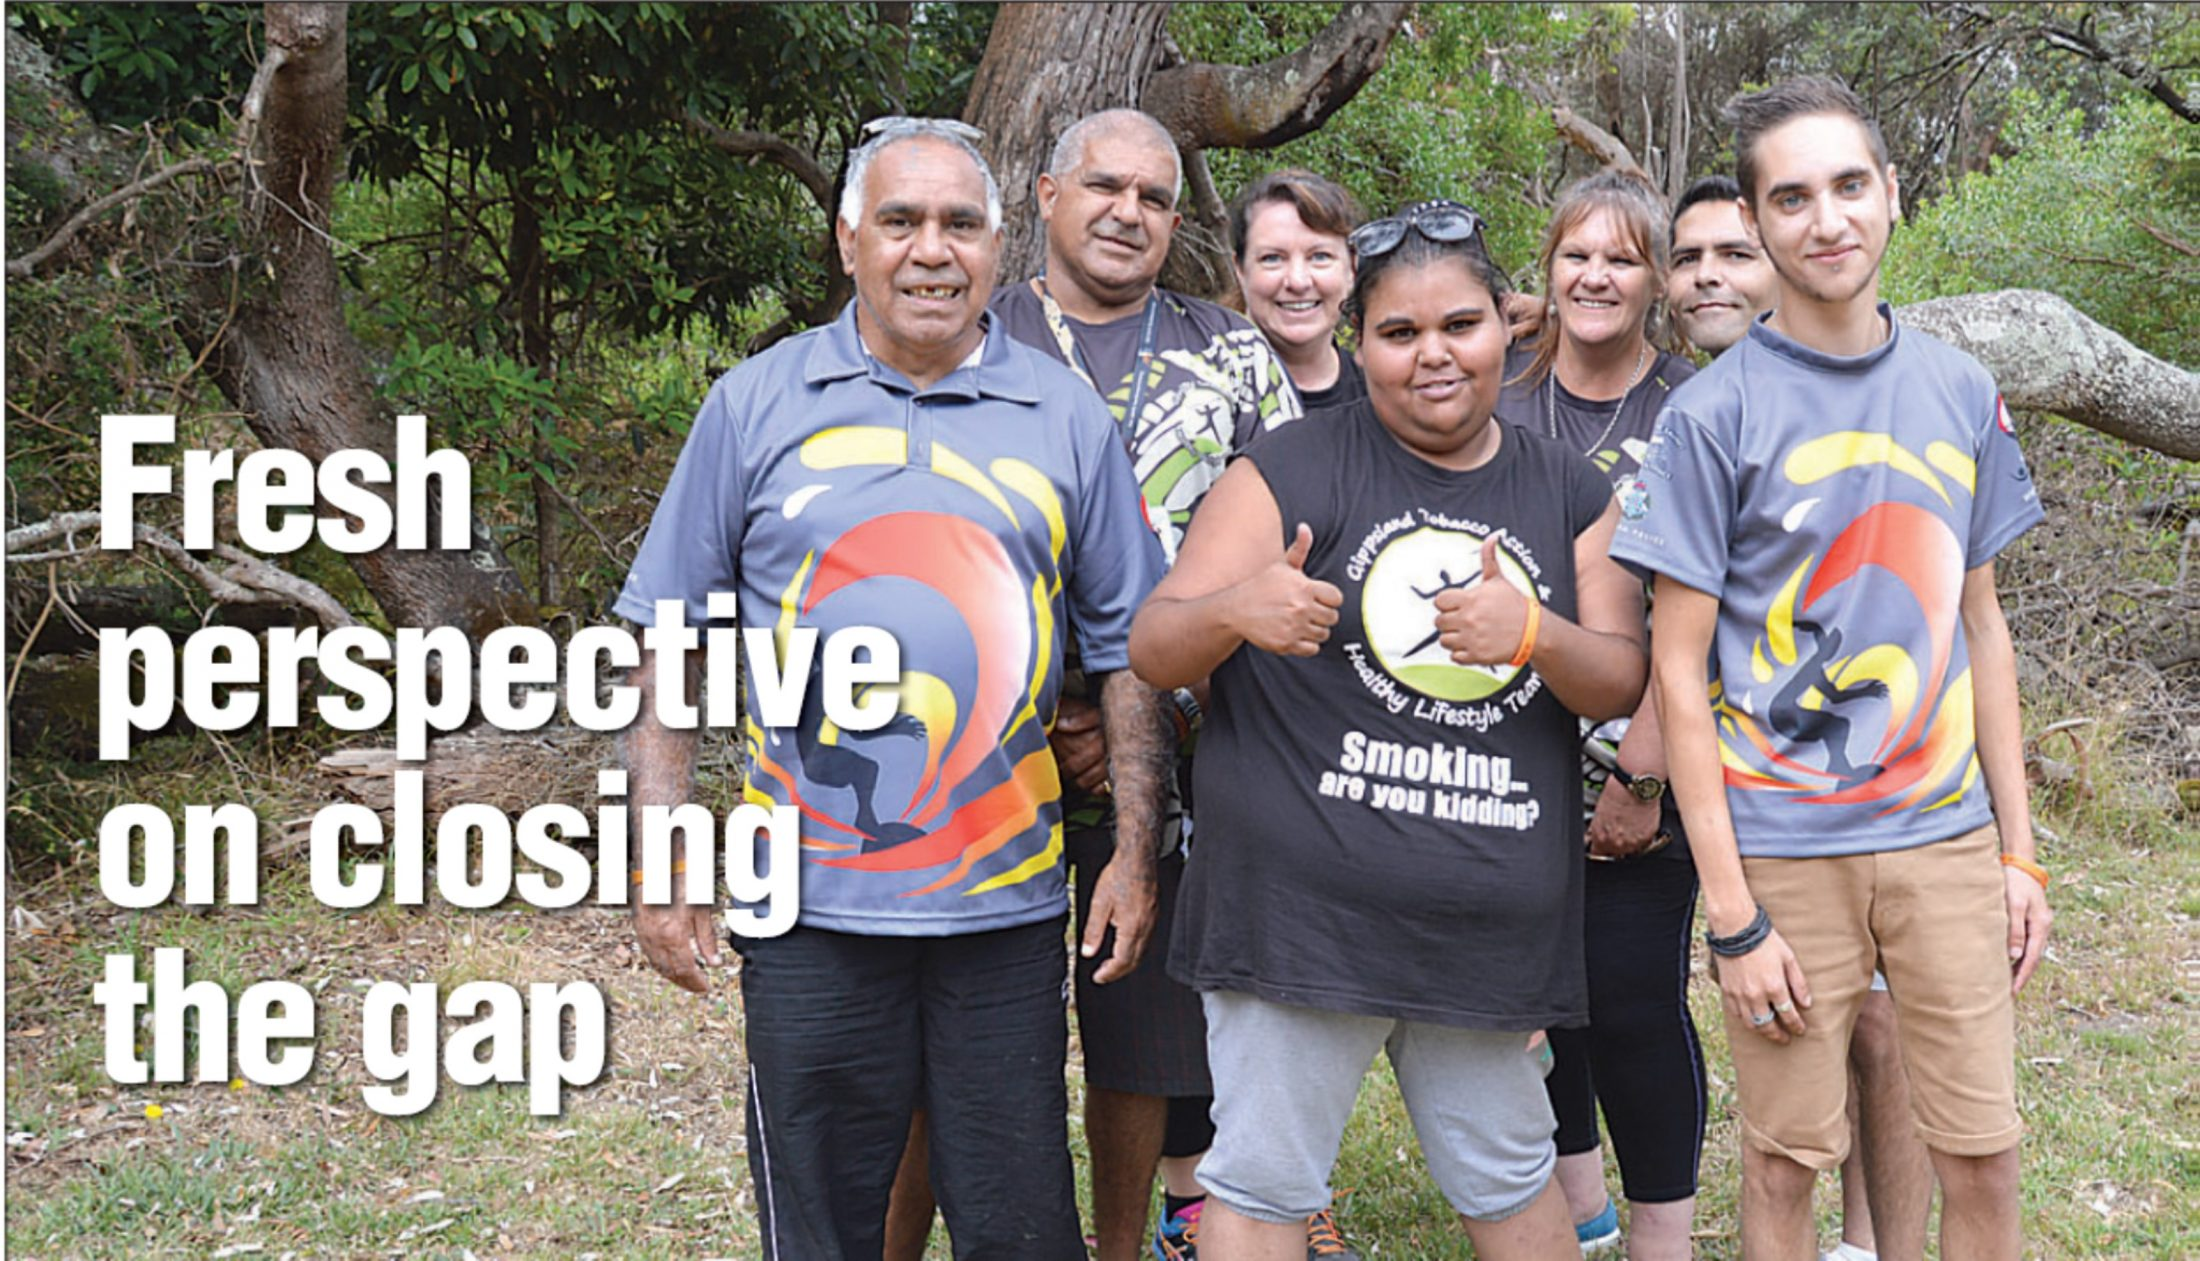 Gippsland Tobacco Action and Healthy Lifestyle Team